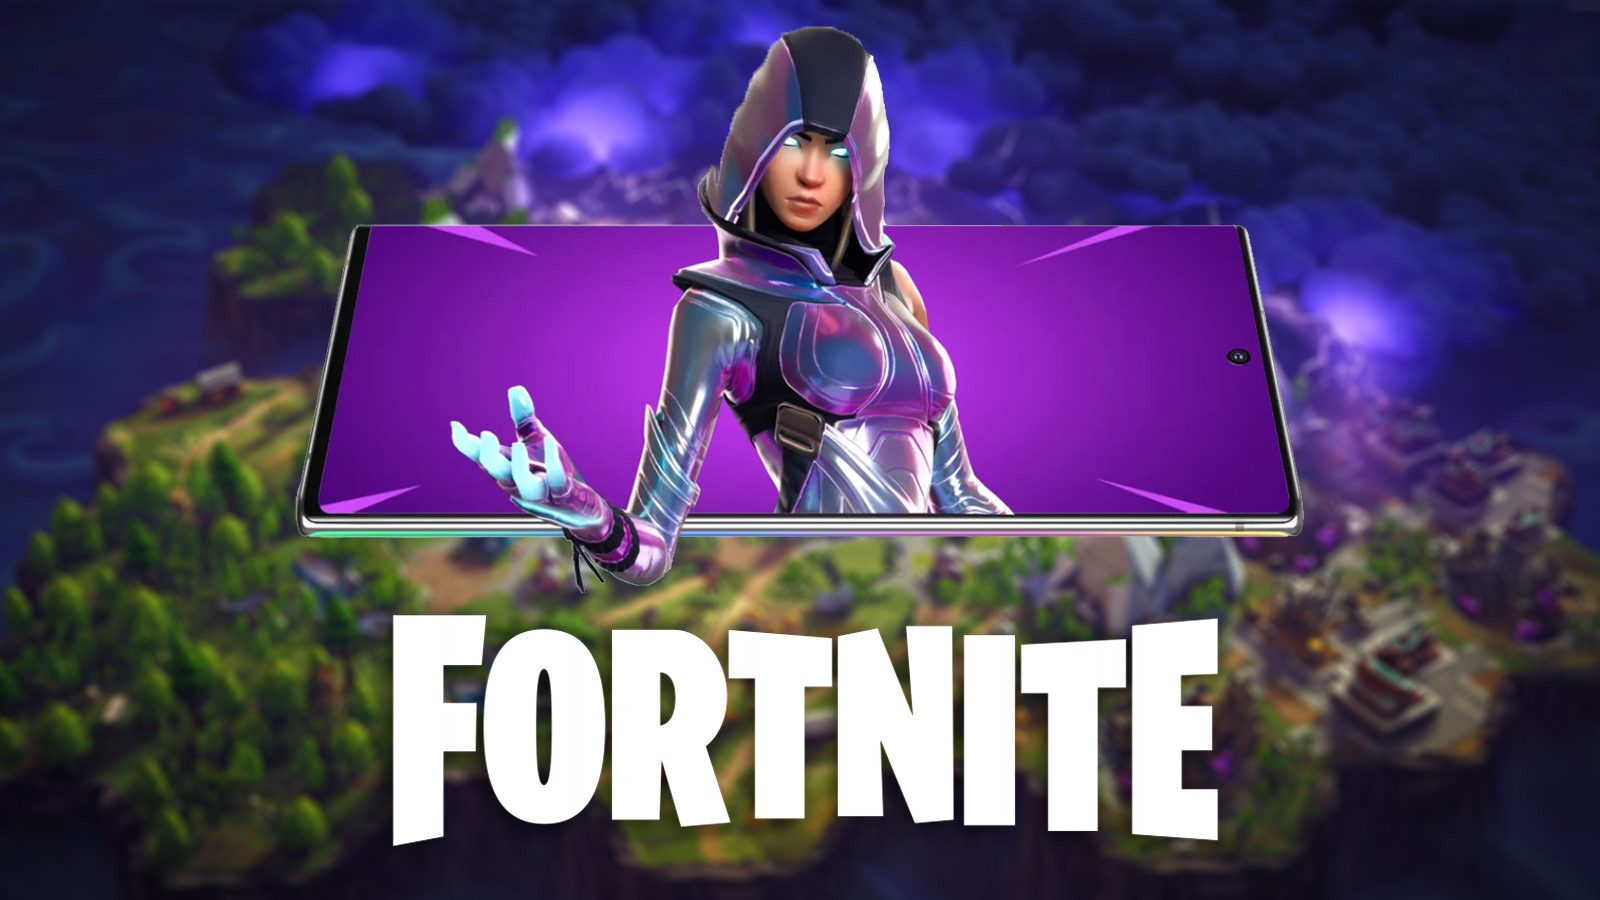 Fortnite Epic Games Release New Teaser For The Day From